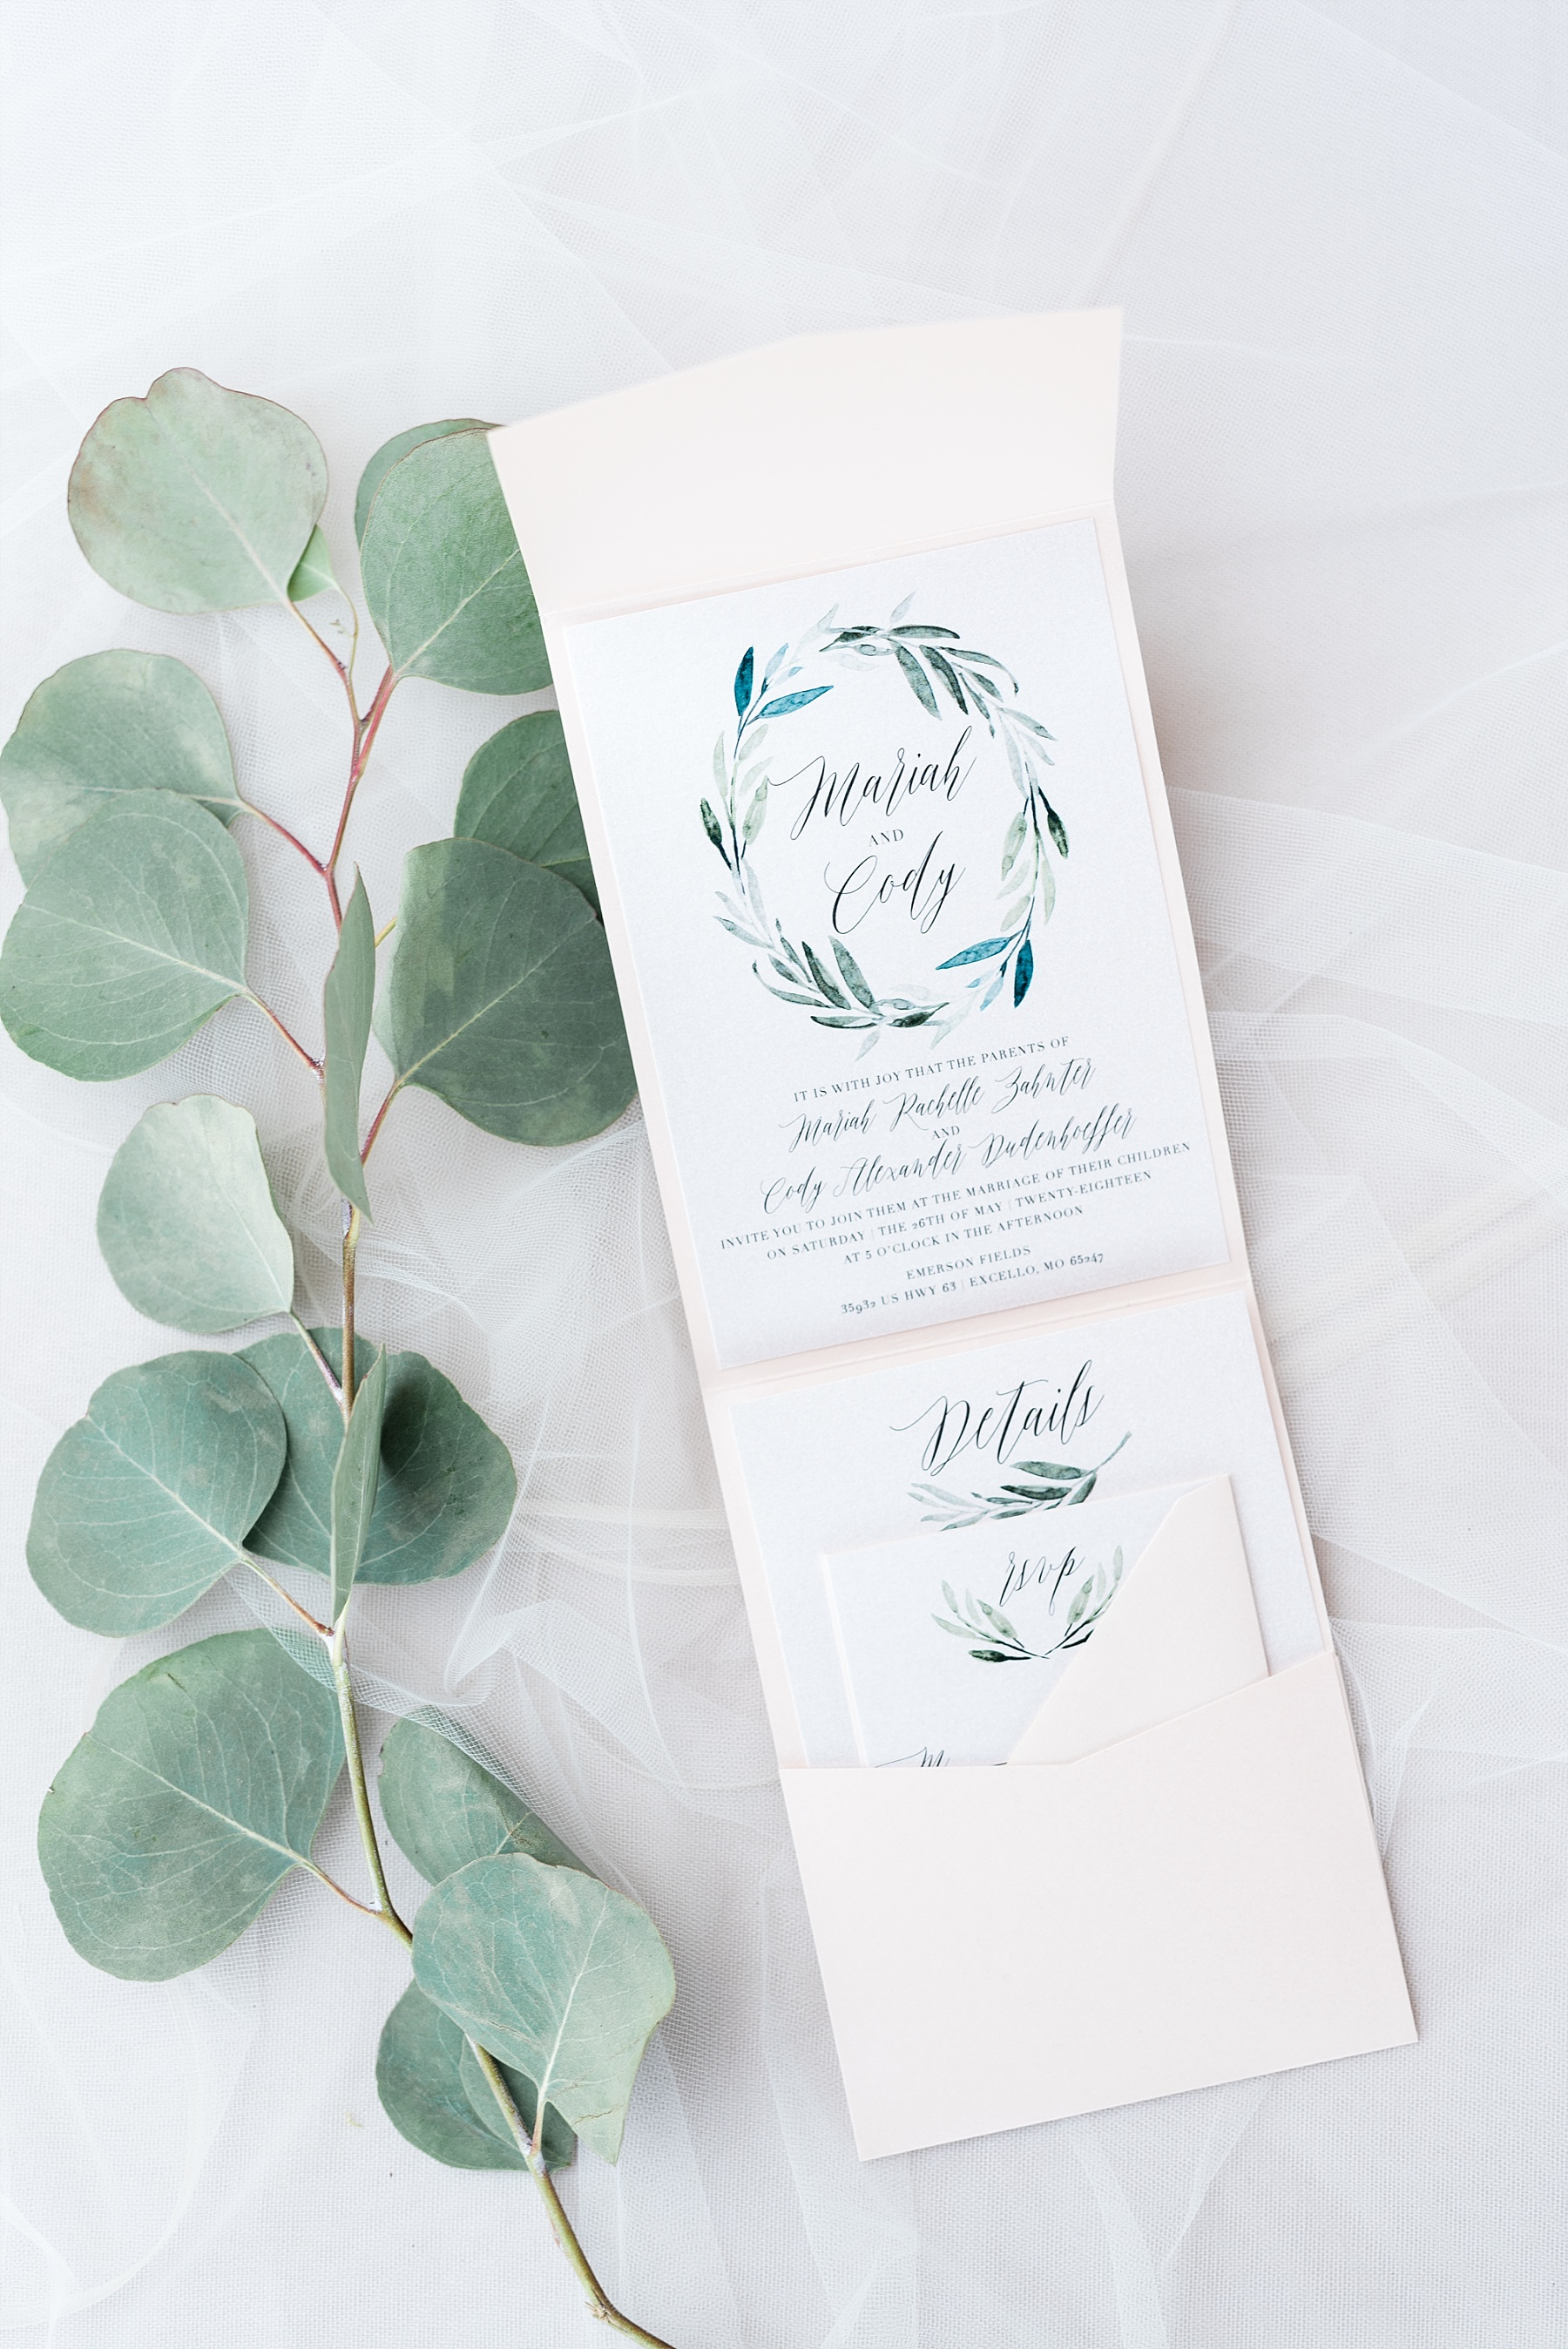 Stunning Heartfelt, Elegant, Fine Art, Chic, Outdoor Spring Wedding with Blush, Cream, Greenery, Rose Gold, and Sequins at Emerson Fields Venue by Kelsi Kliethermes Photography_0069.jpg